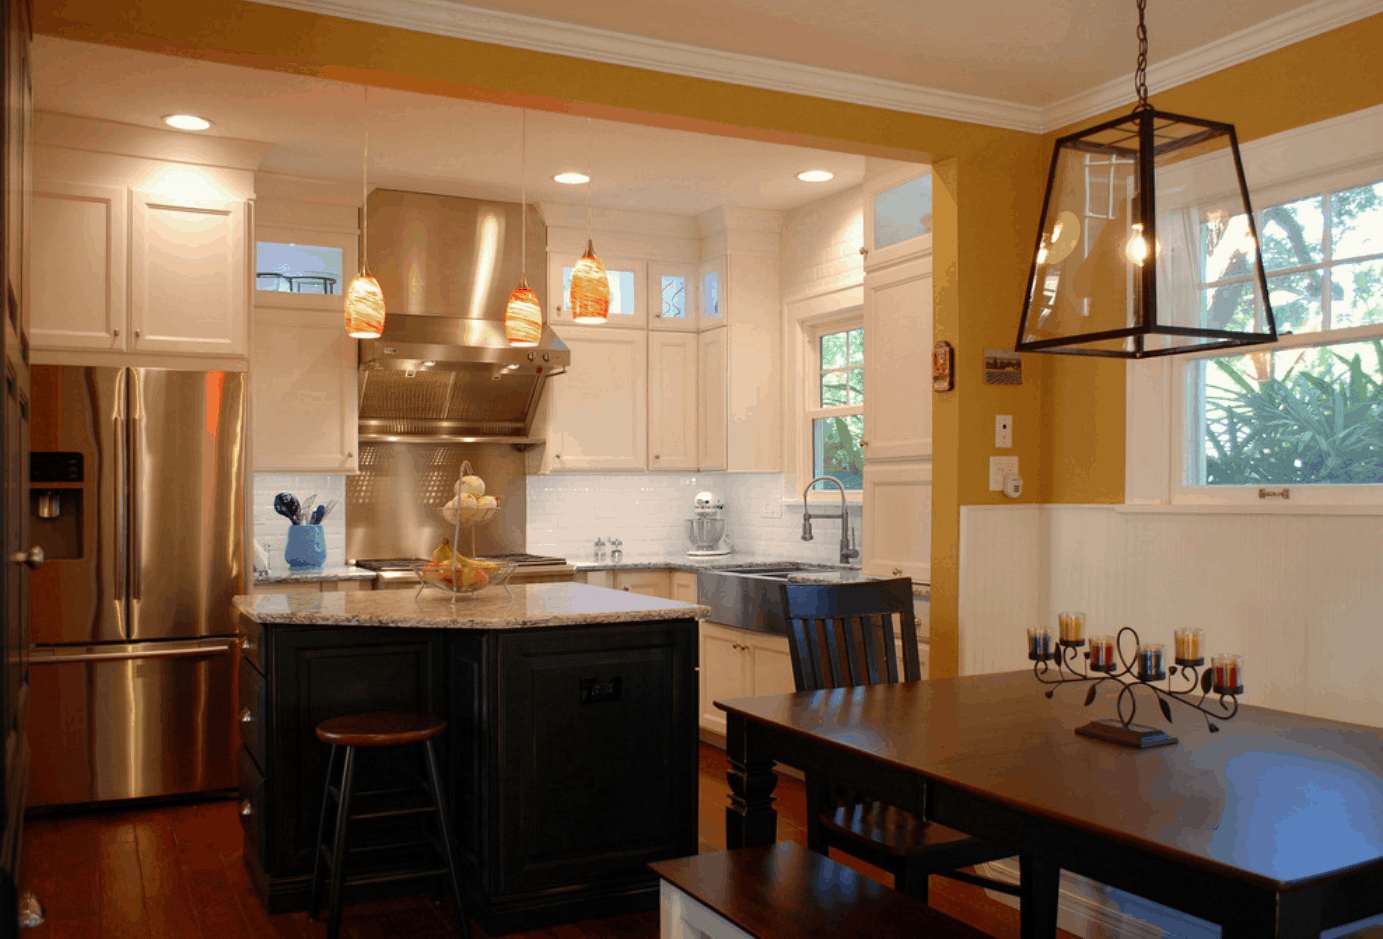 cozy kitchen with yallow walls